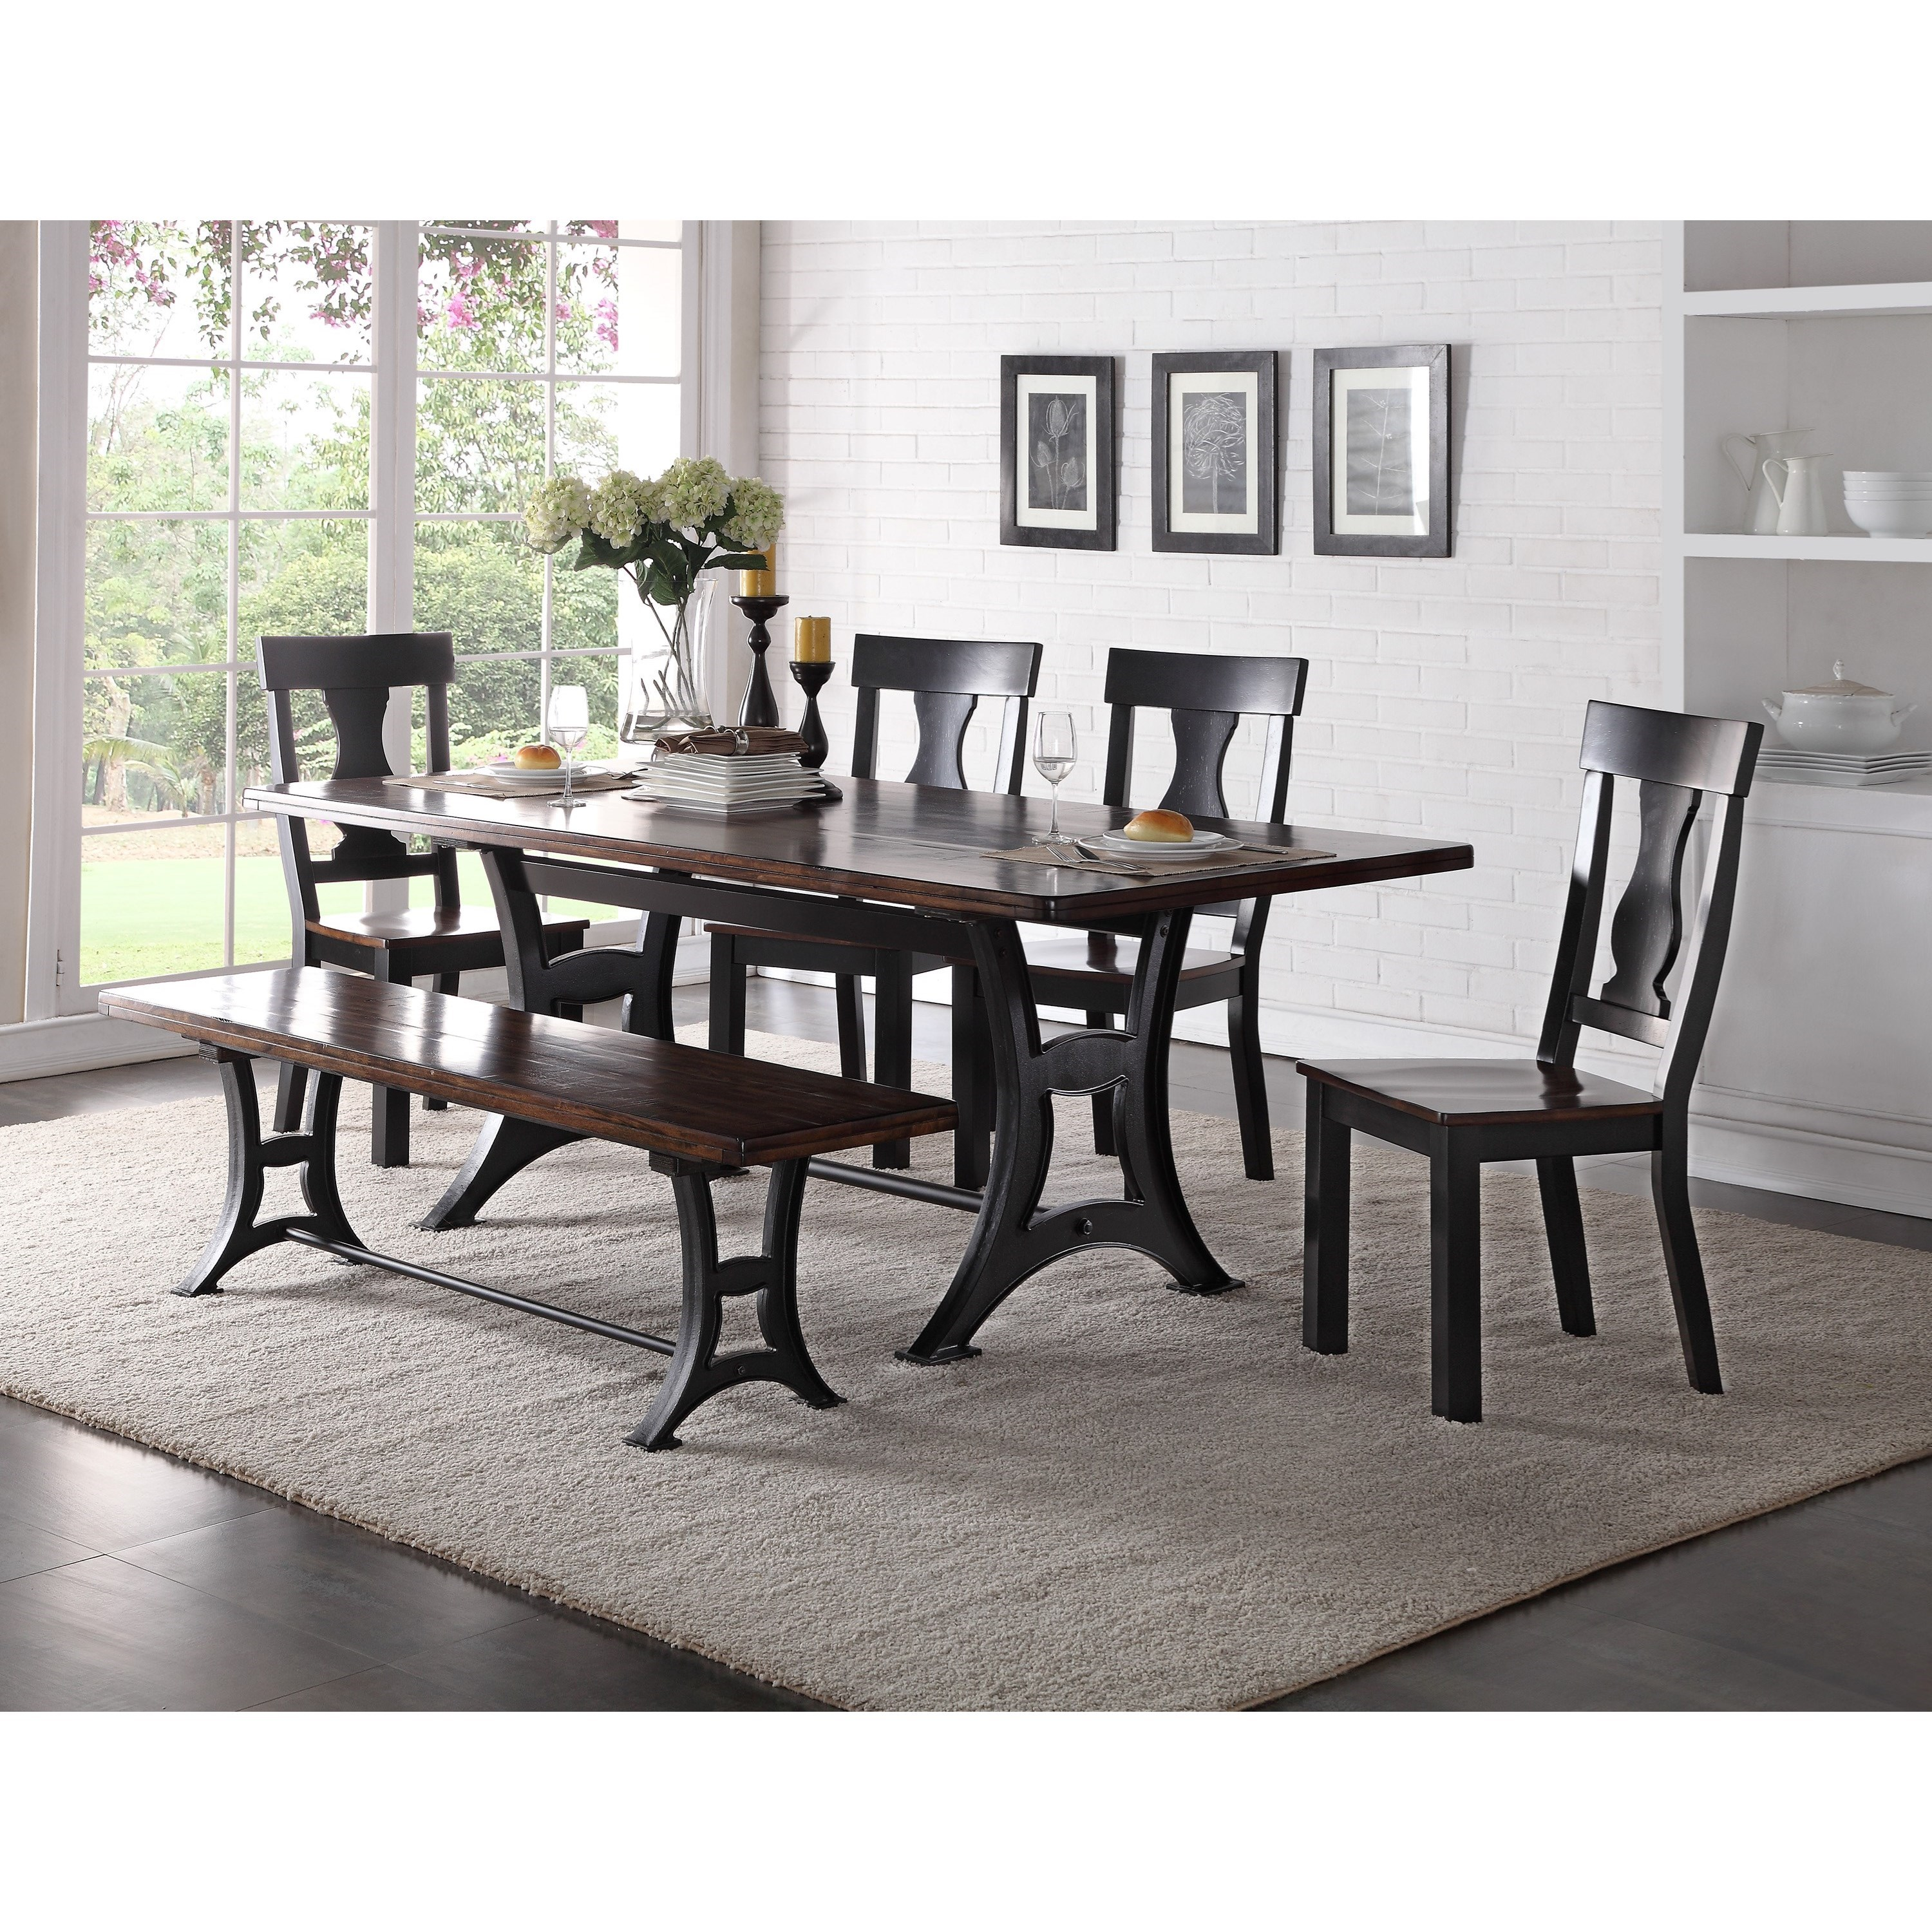 Crown Mark Astor Dining Set with Bench - Item Number: 2105T-4284-TOP+BASE+4x5S+BENCH